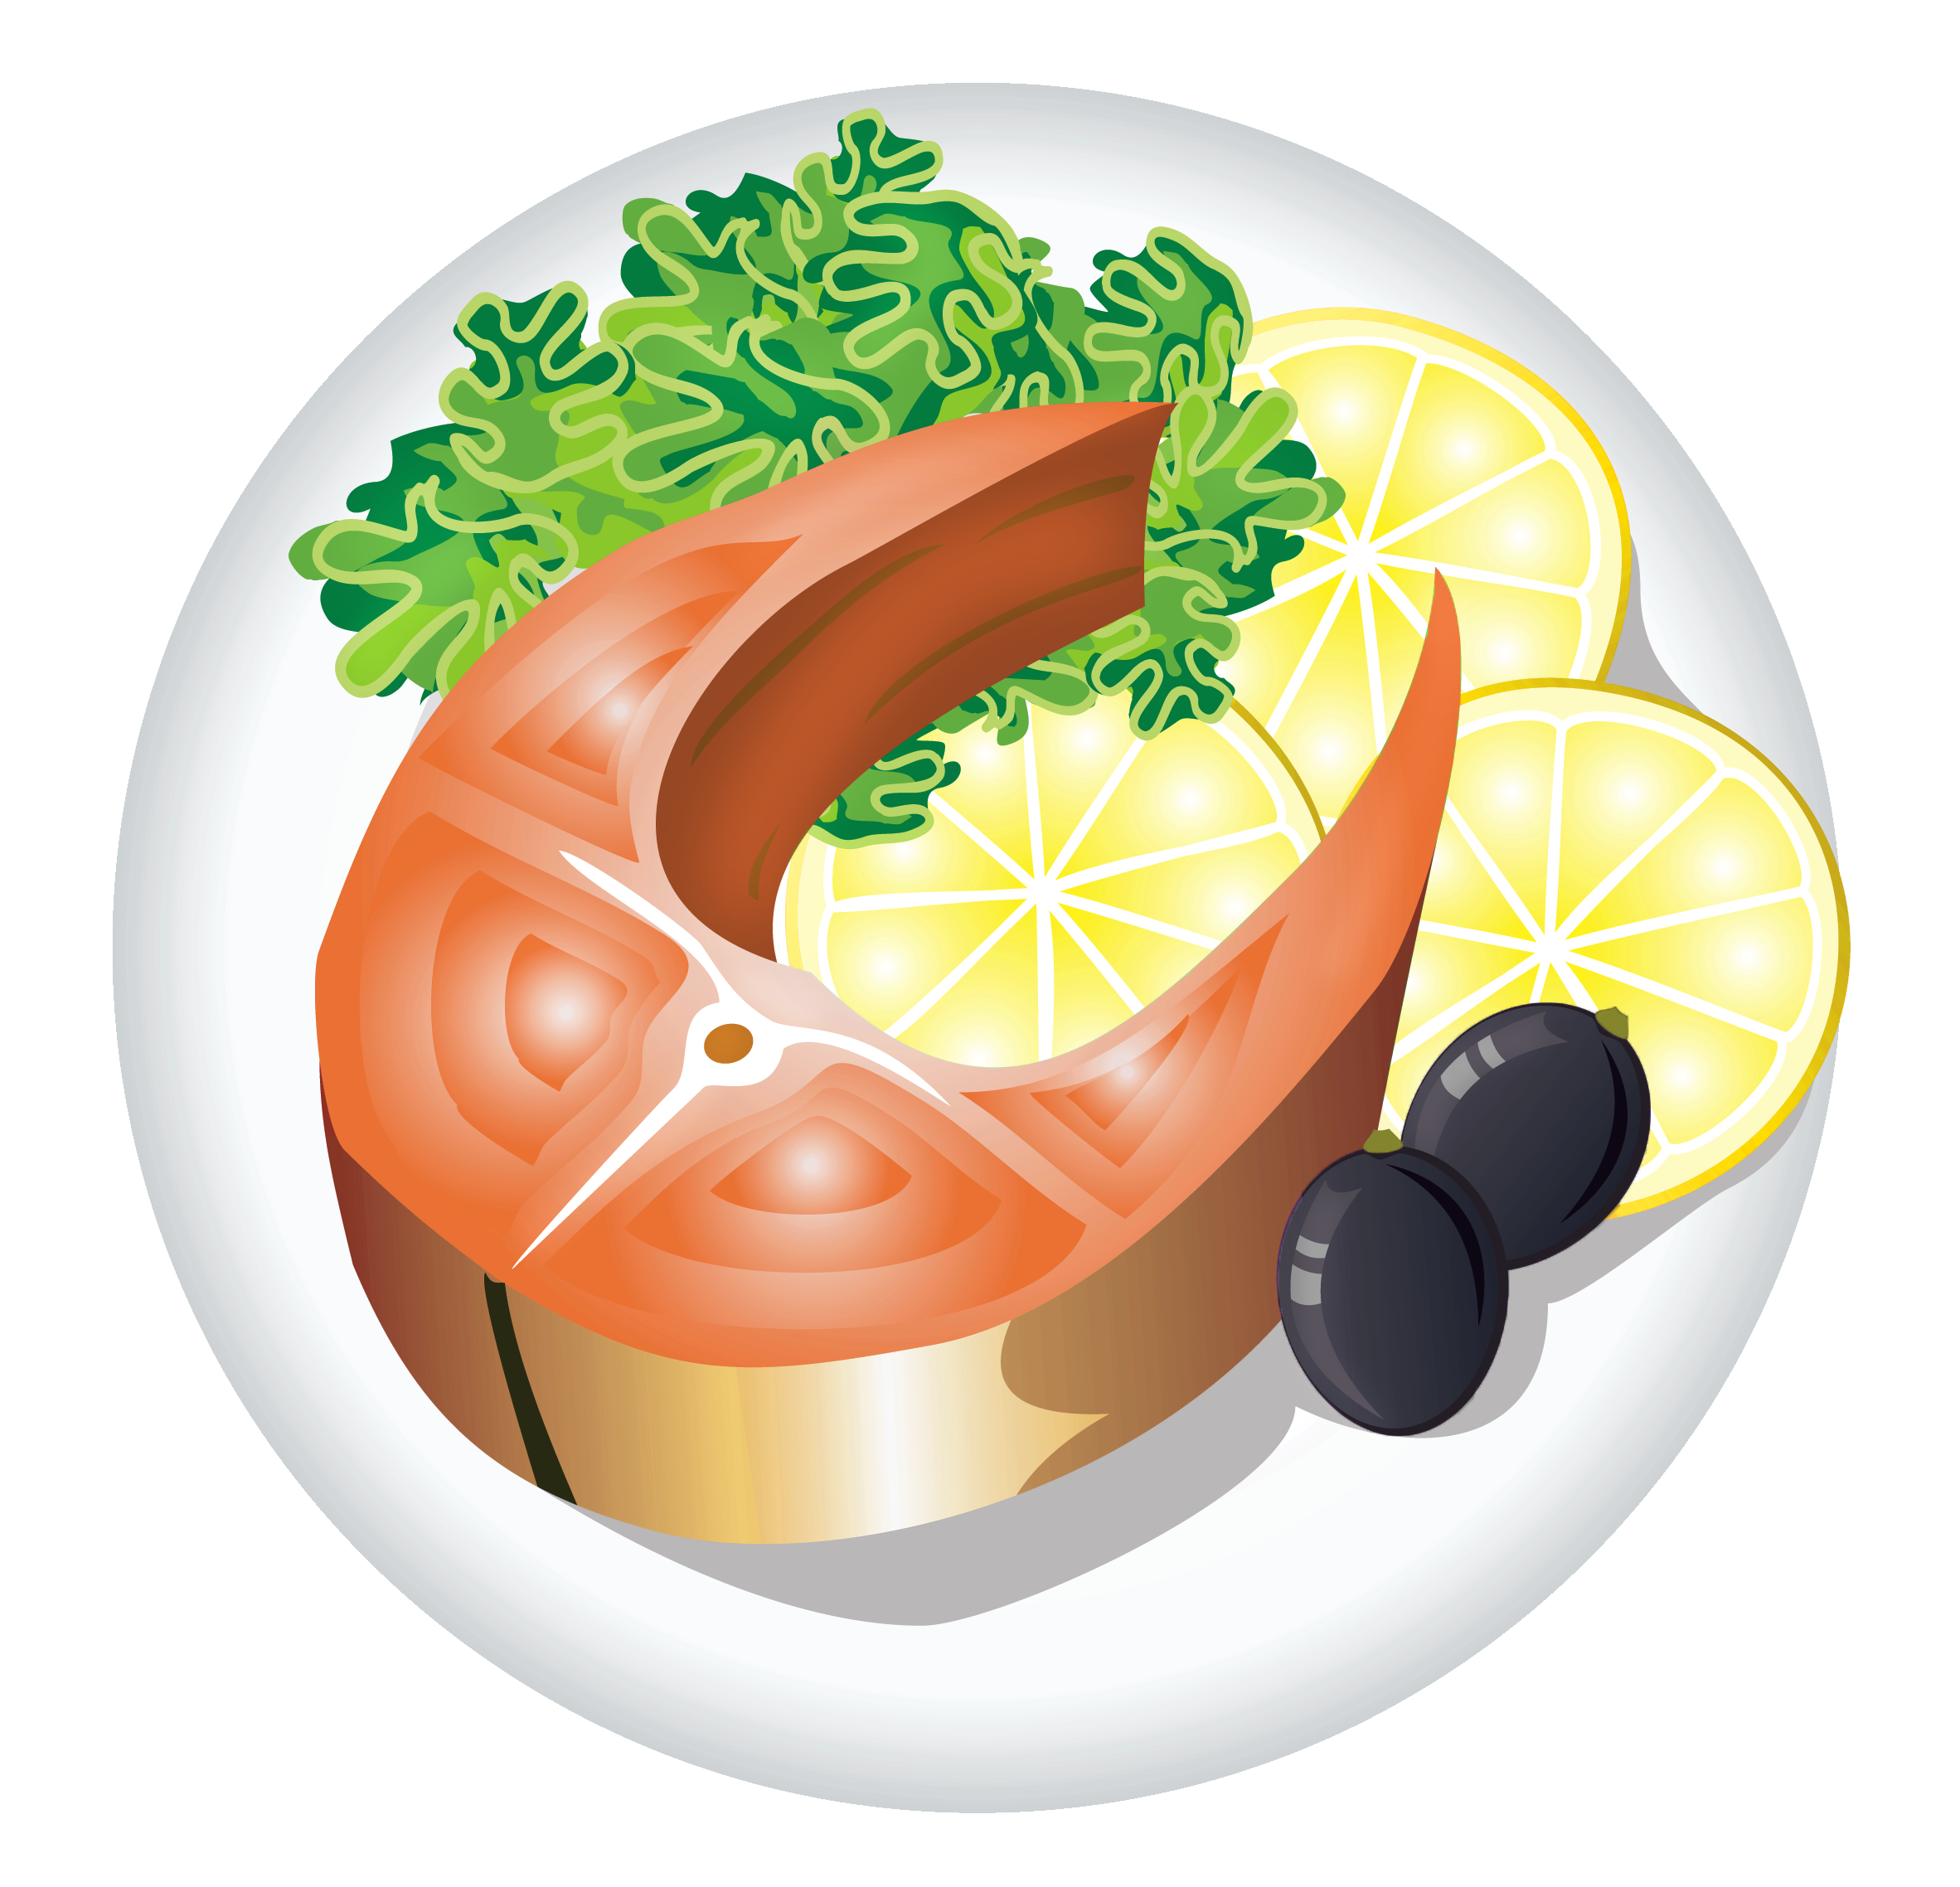 transparent download Related image cartoon food. Dish clipart side dish